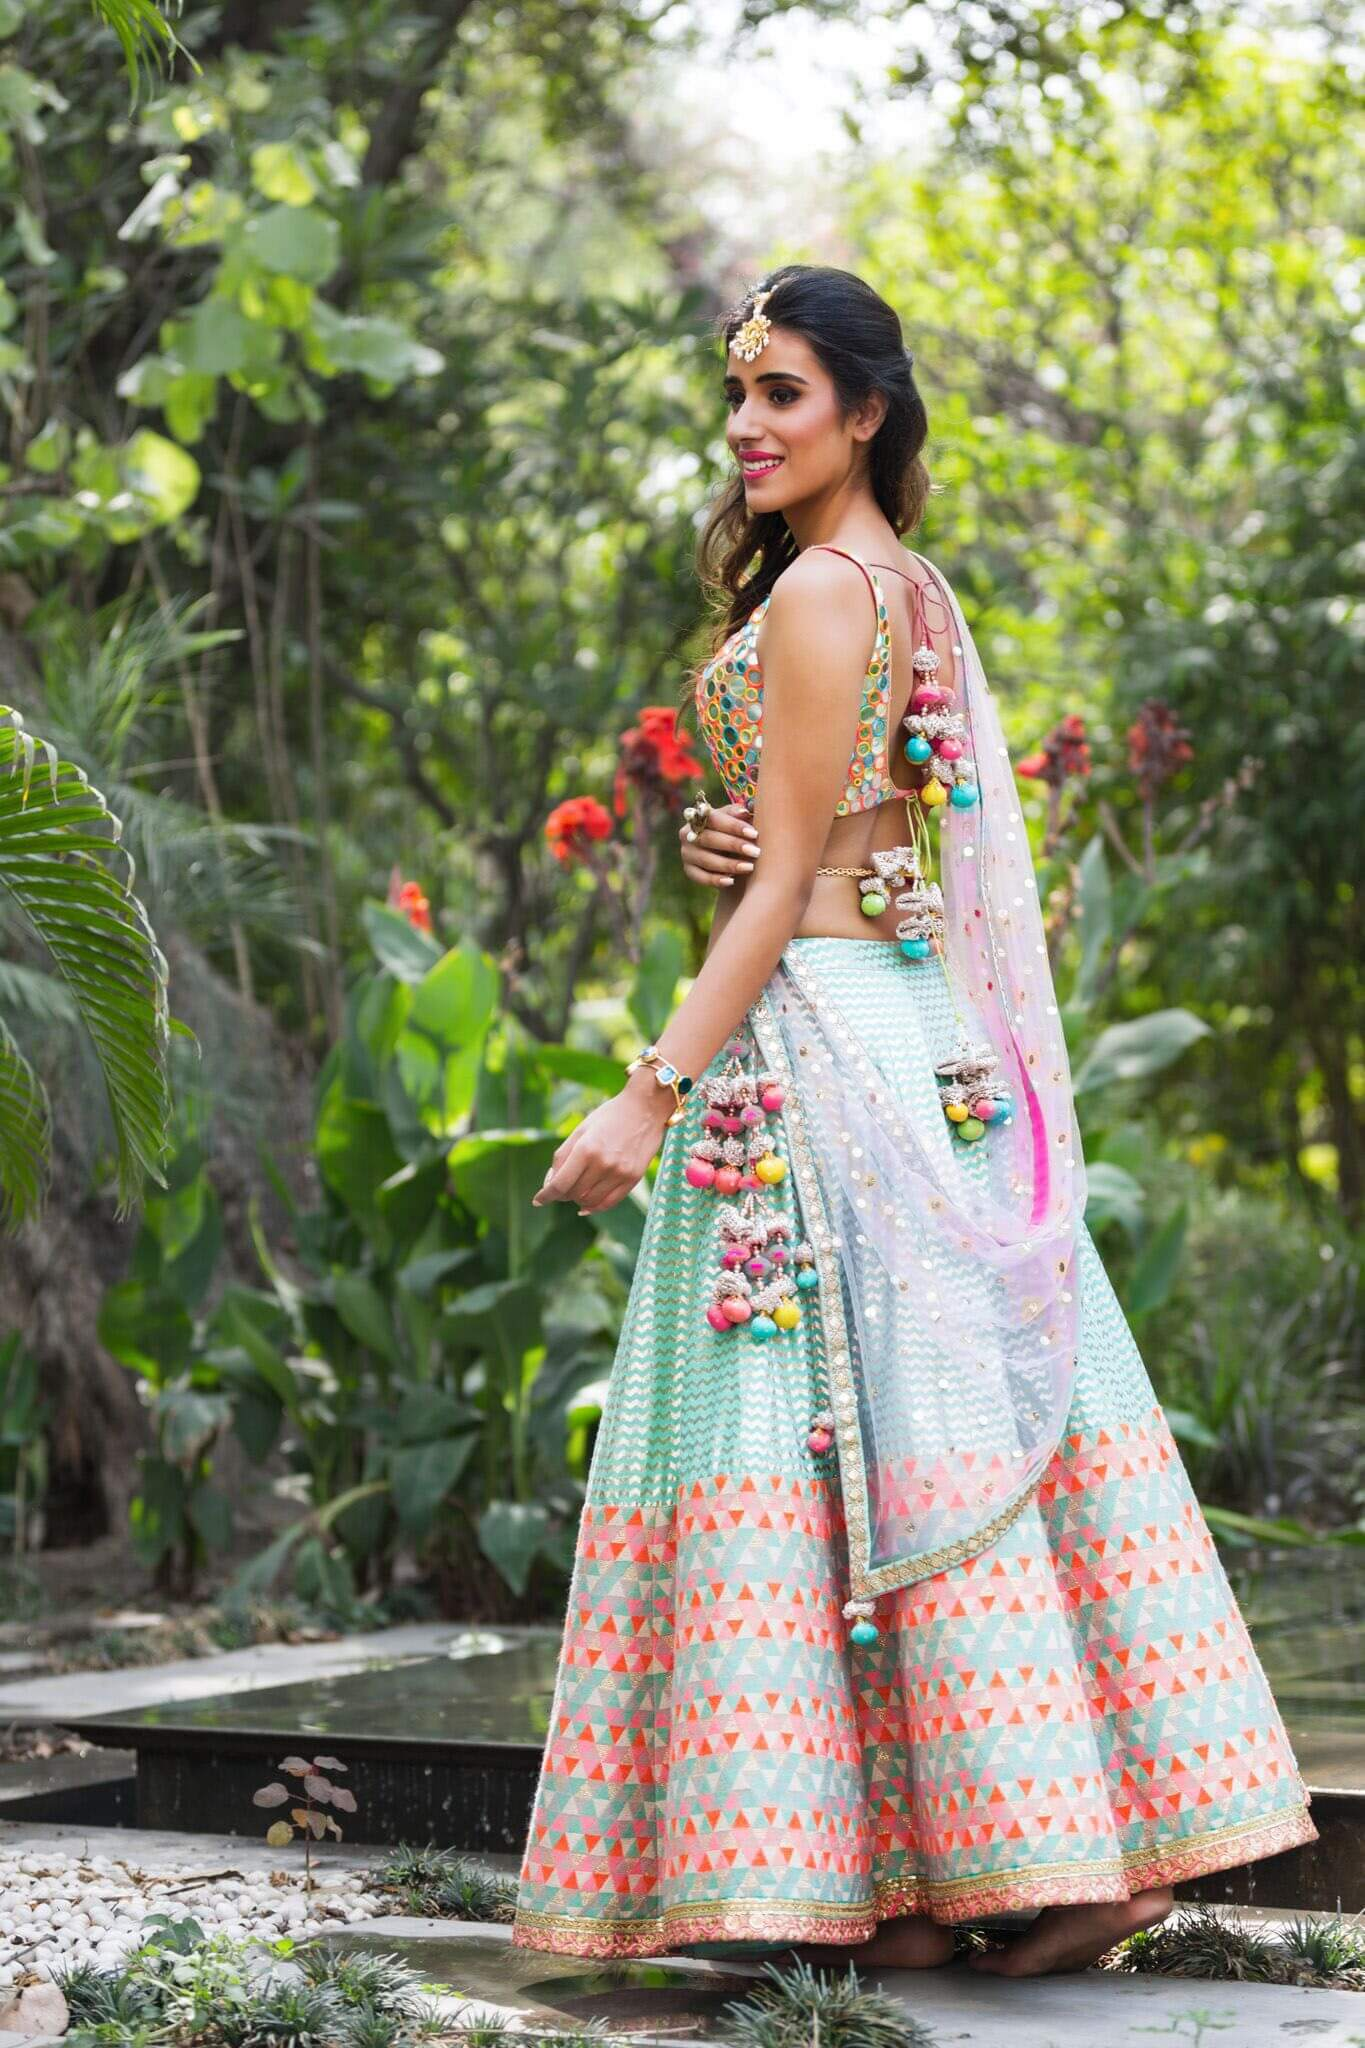 #41 Colorful And Beautiful Latkan For Wedding Lehenga!